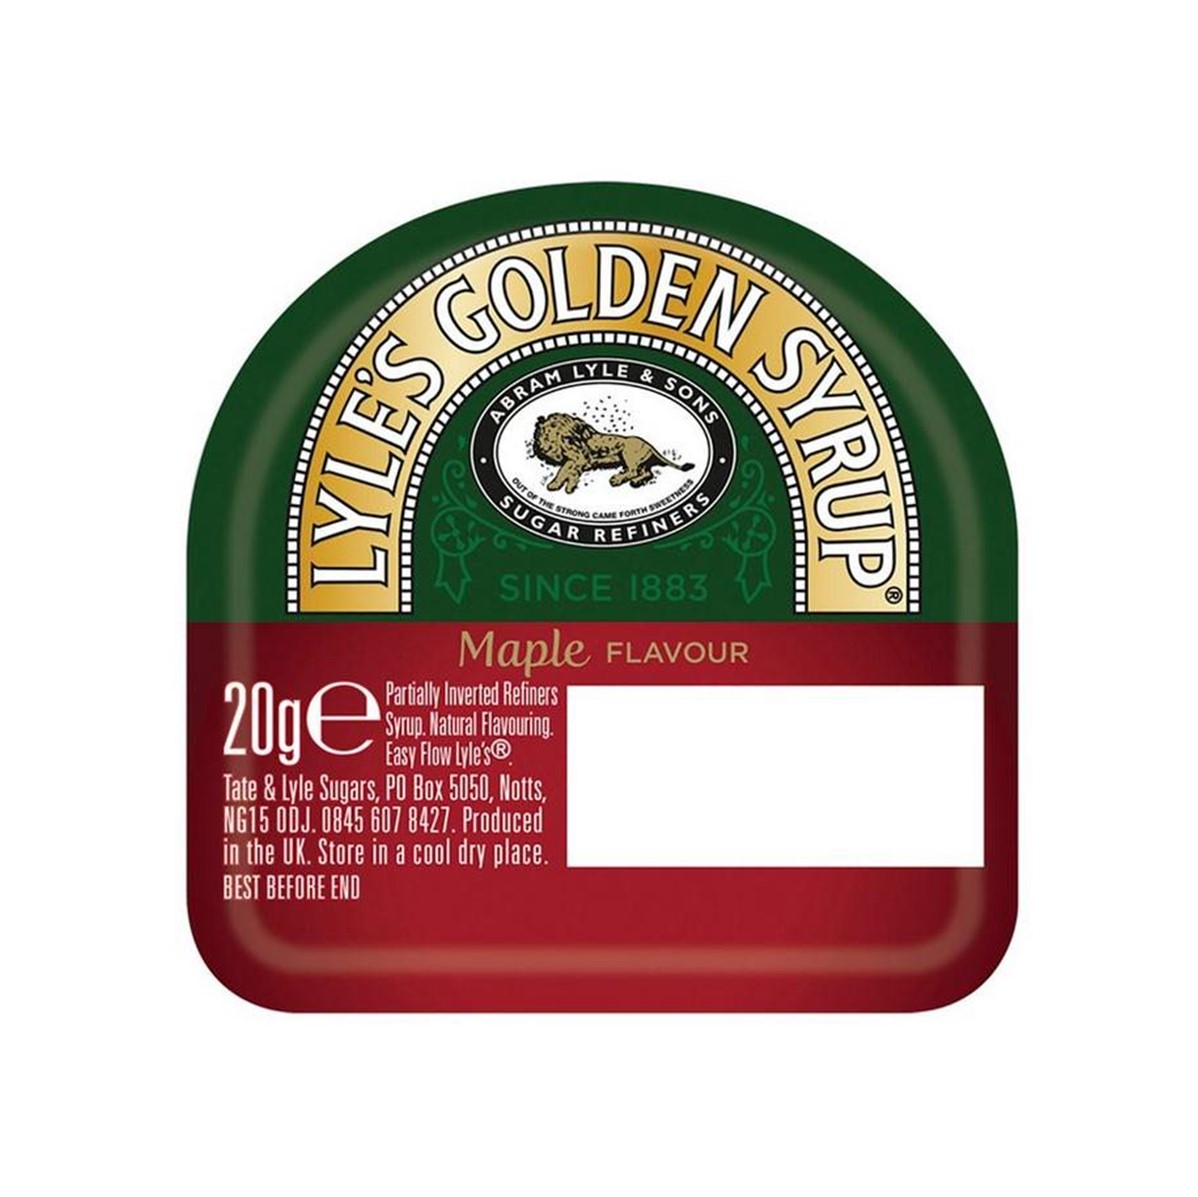 Lyle's Golden Syrup MAPLE Flavour - 4x24x20g mini tubs